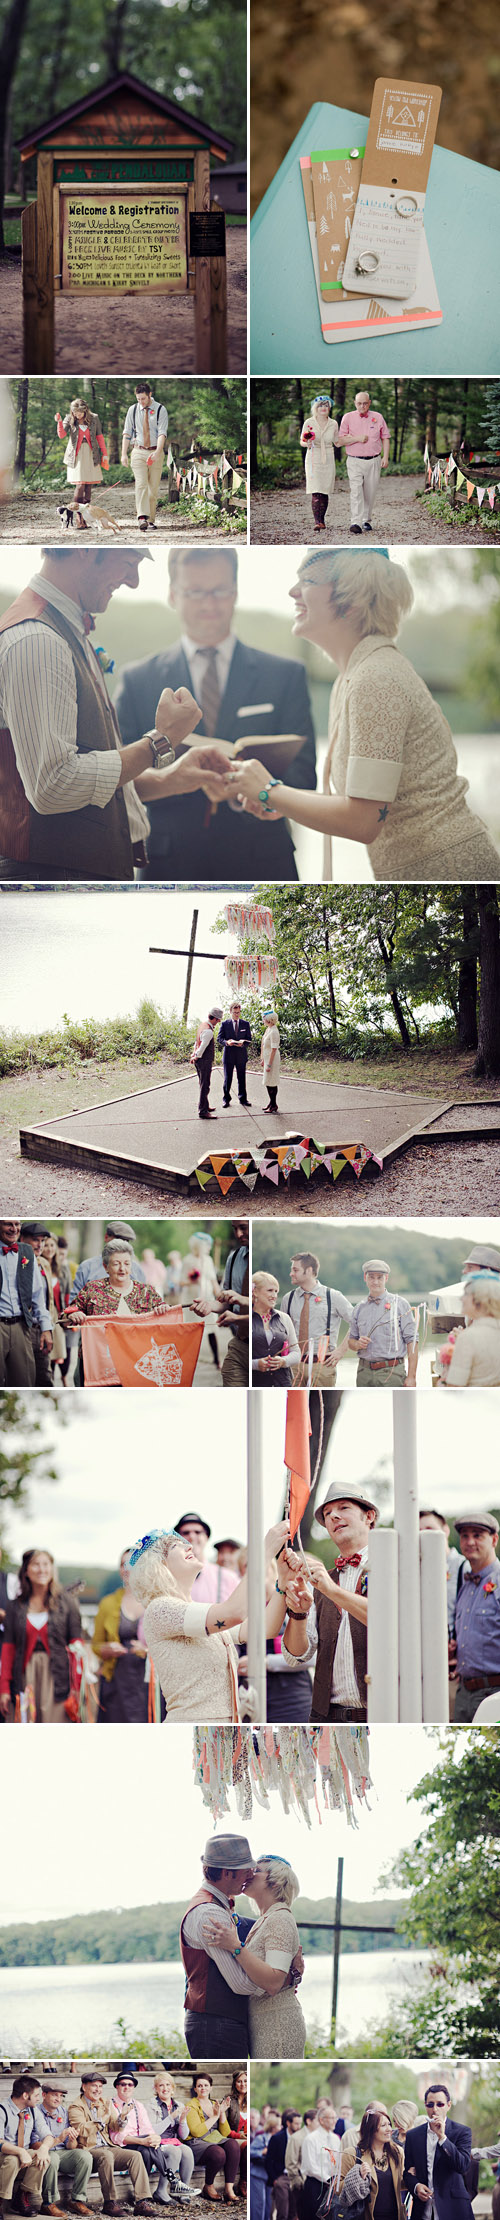 vintage summer camp inspired wedding in Michigan, creative alternative wedding photos by Kat Braman